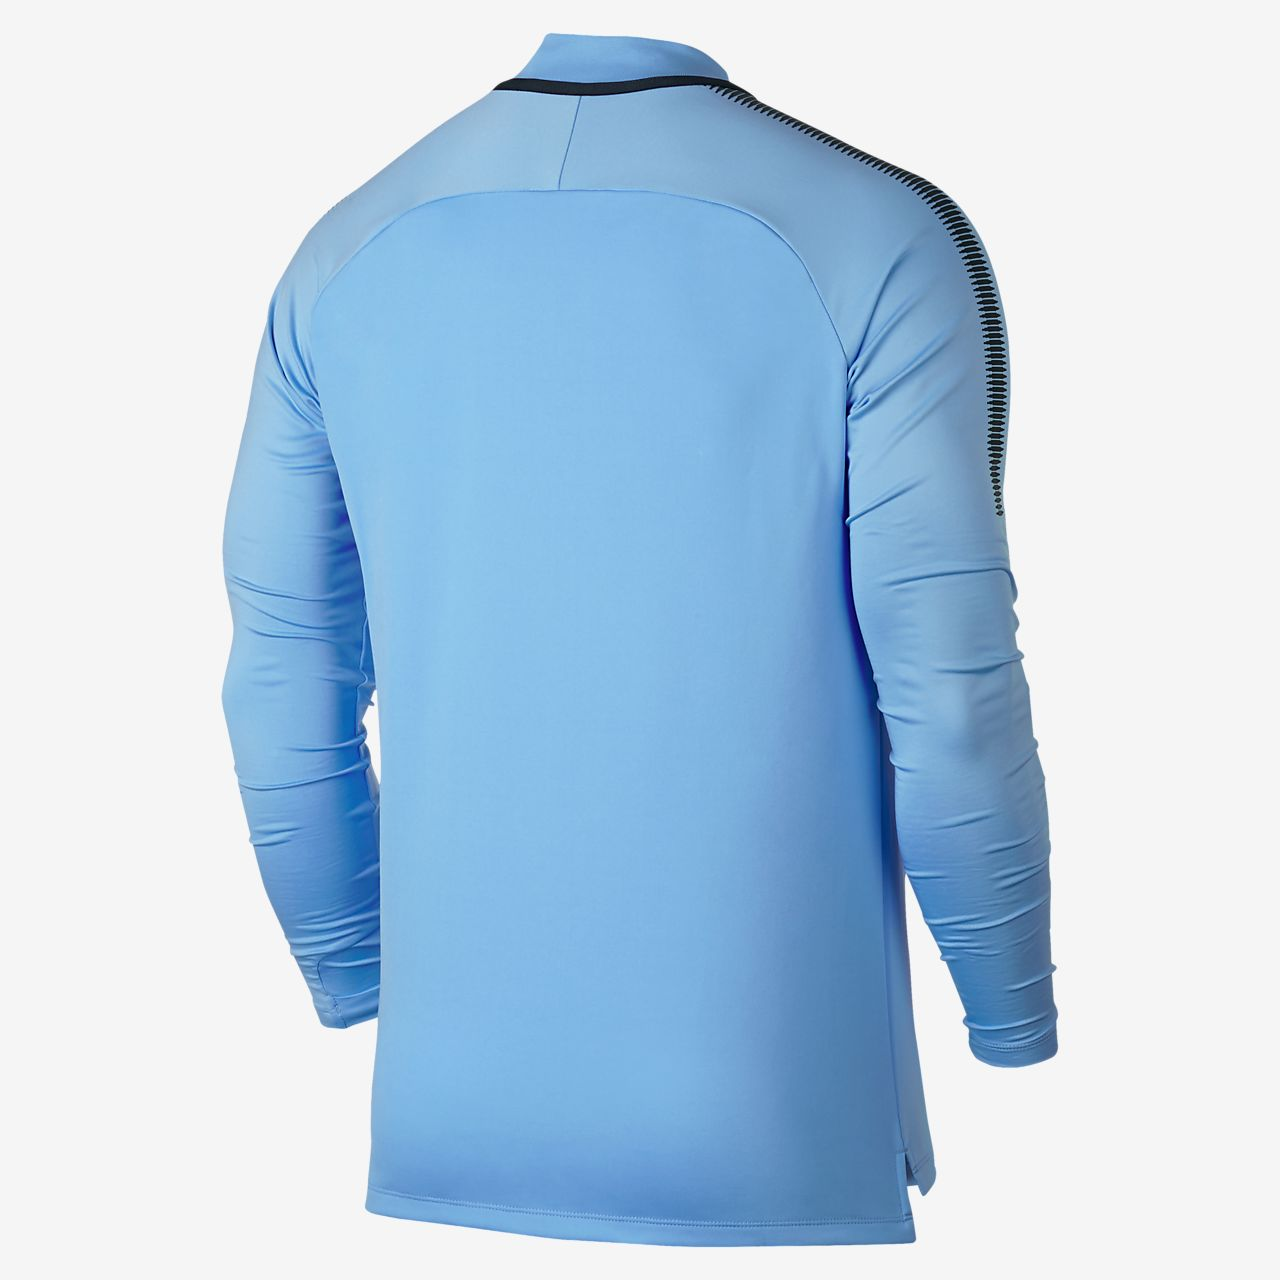 ... Manchester City FC Dri-FIT Squad Drill Men's Football Top